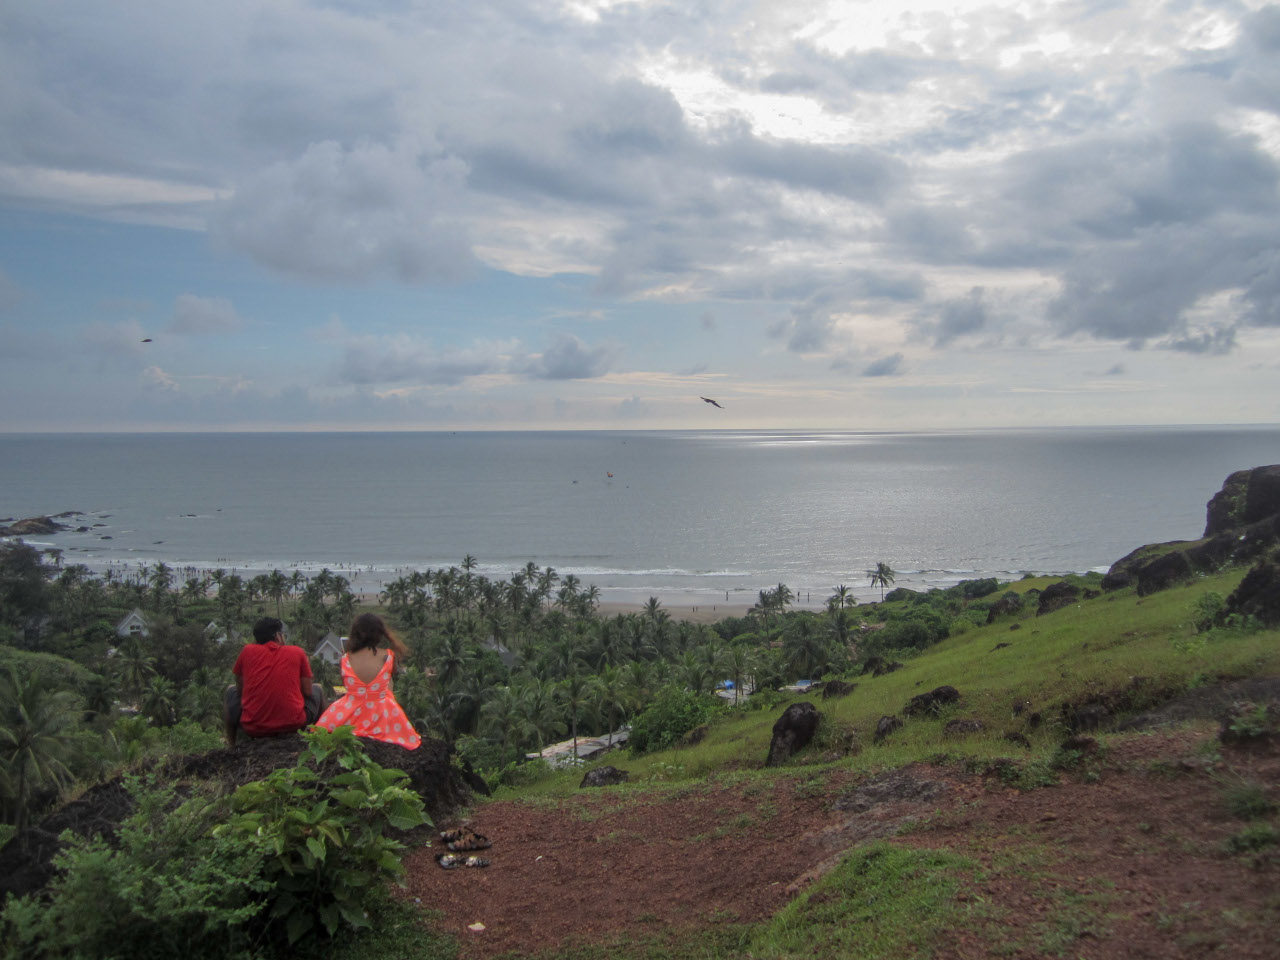 View from Chapora Fort - this fort is one of the best Goa things to do and one of the popular tourist destinations in Goa. Discover more things to do in Goa from this Goa guide